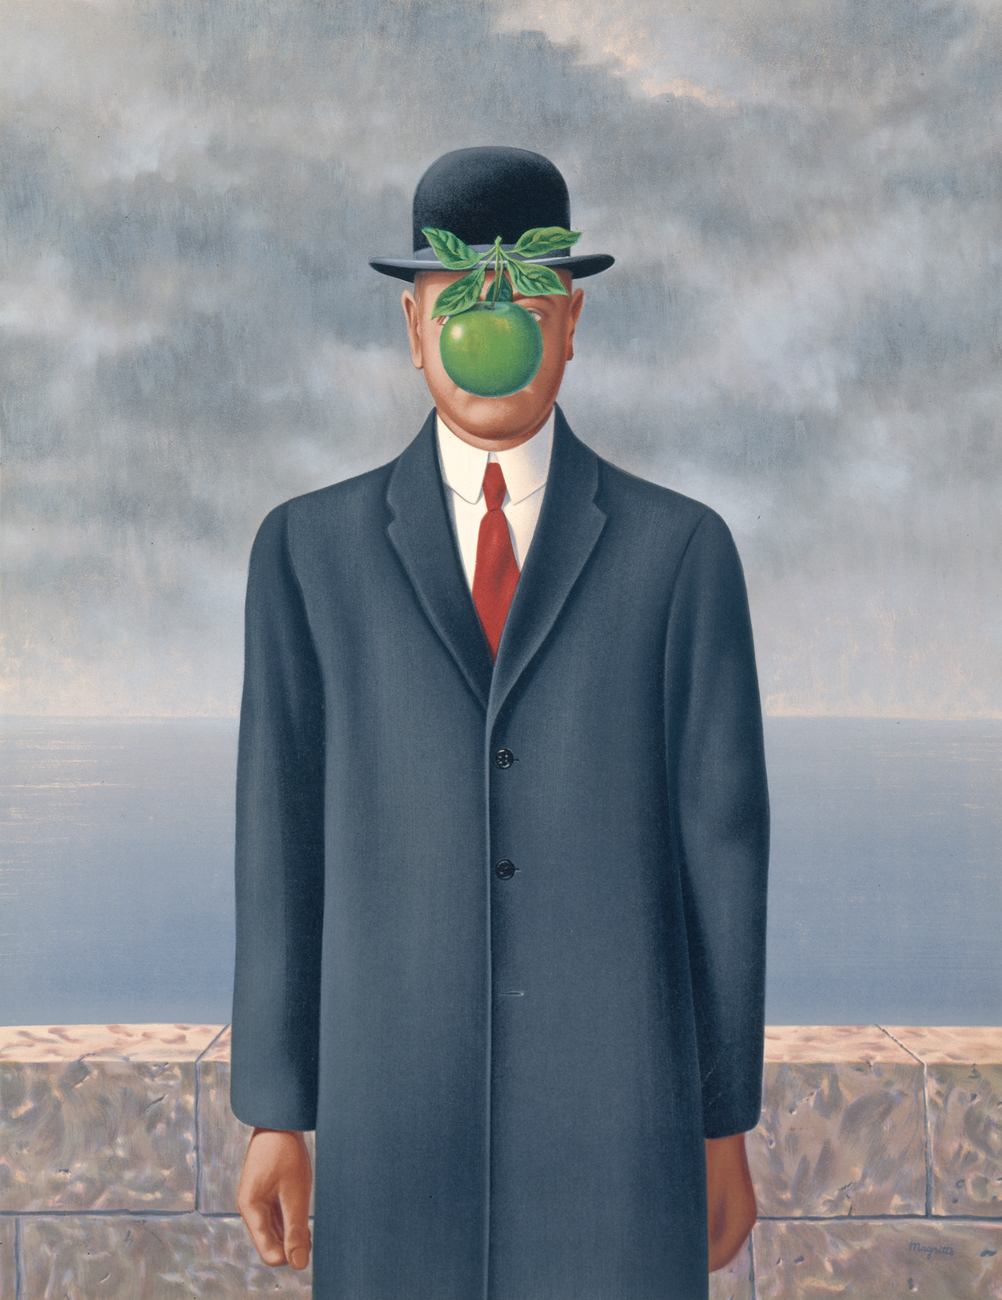 Son of Man, by René Magritte